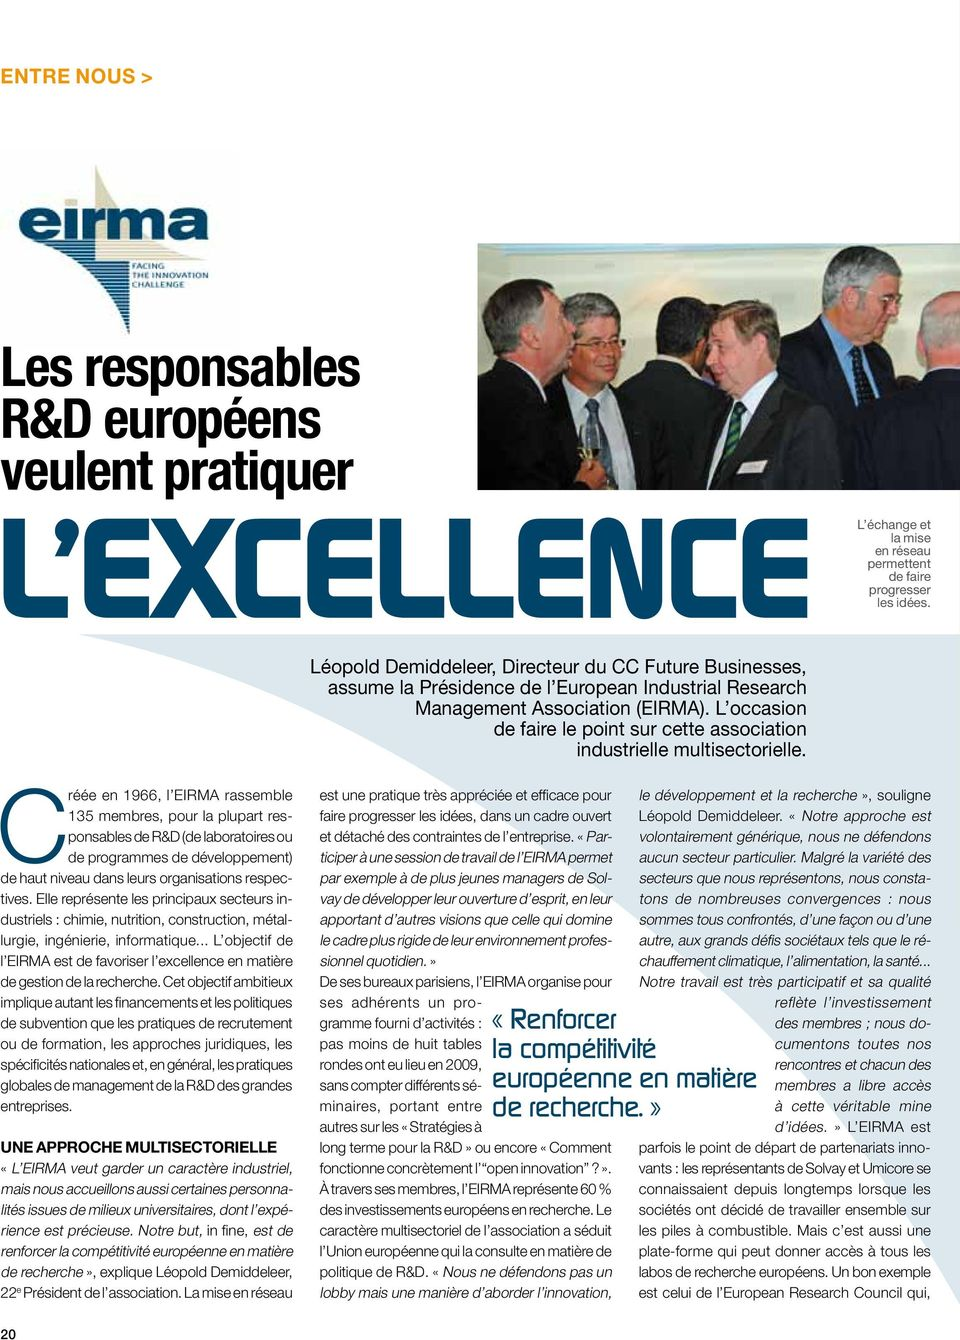 L occasion de faire le point sur cette association industrielle multisectorielle.